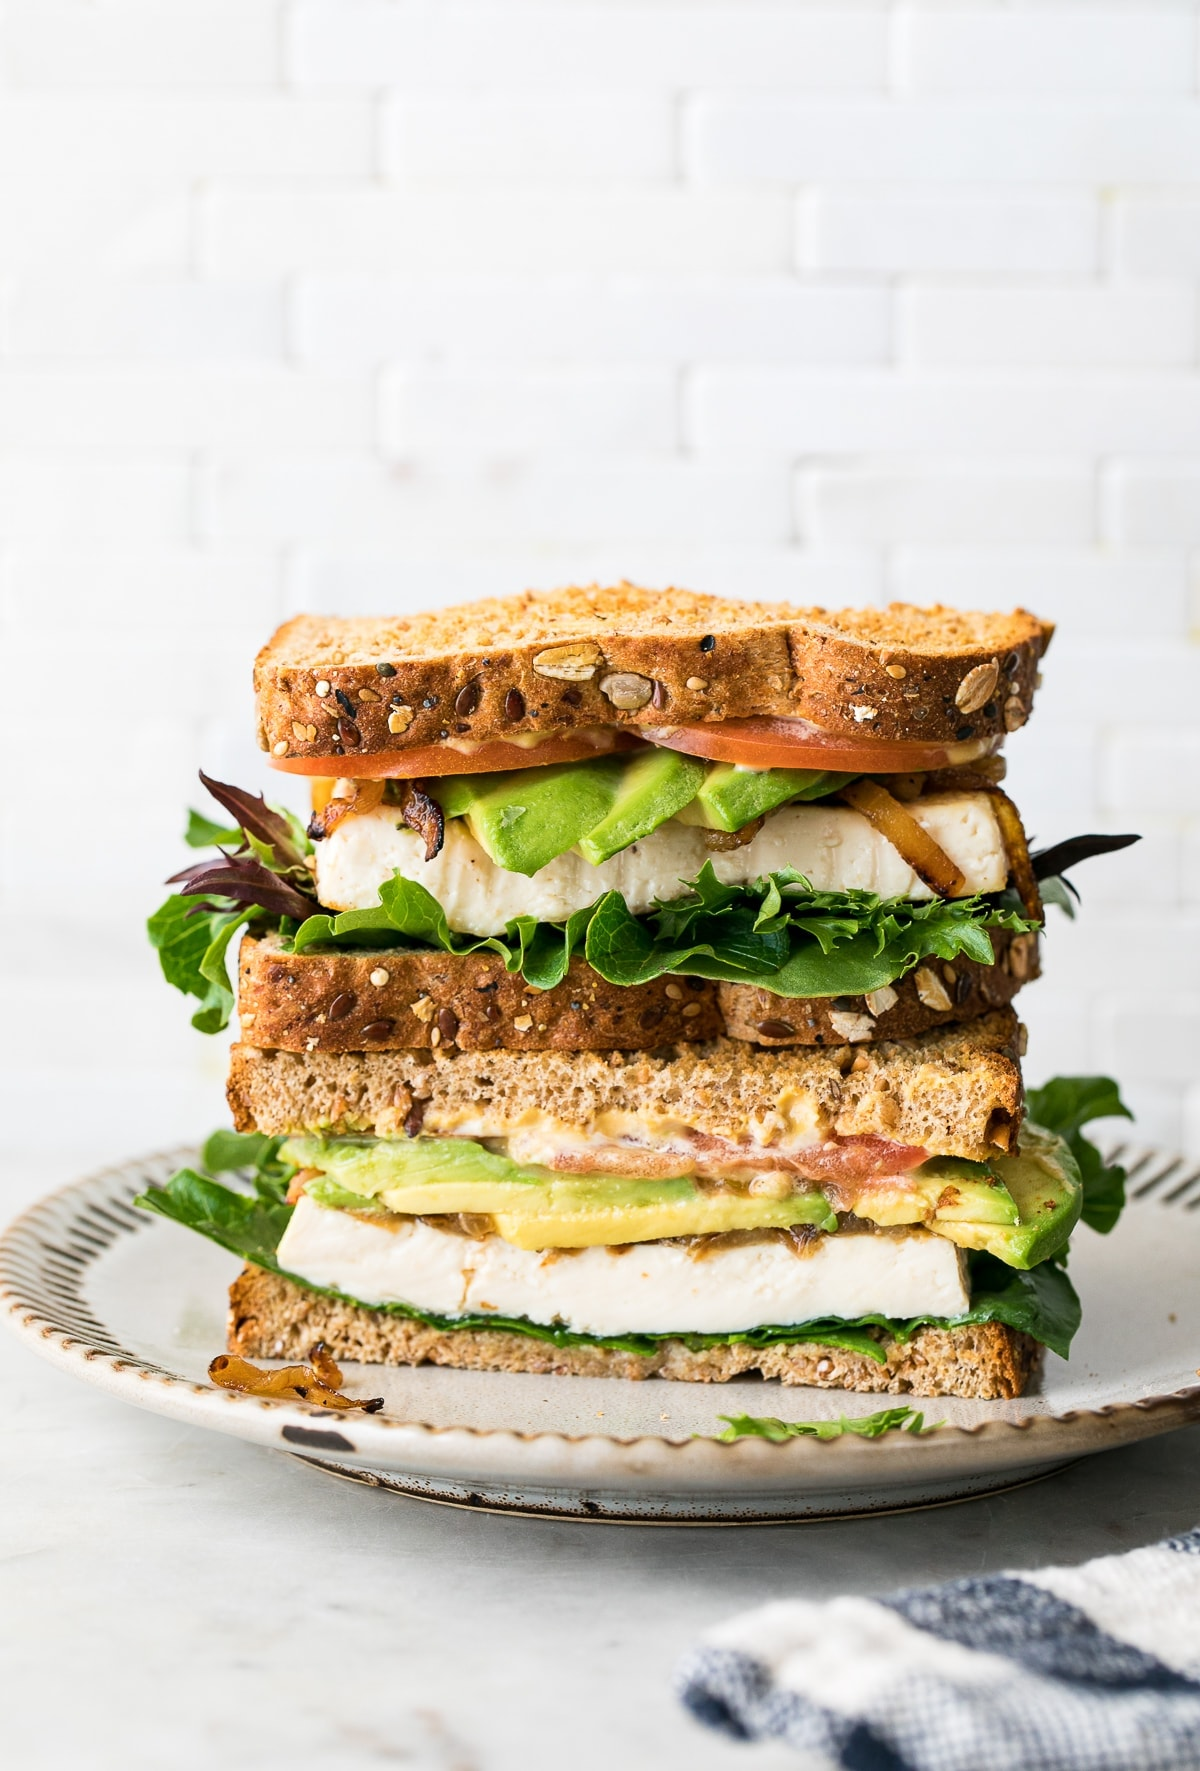 Toasted Avocado Tofu Sandwich Sauteed Onions The Simple Veganista